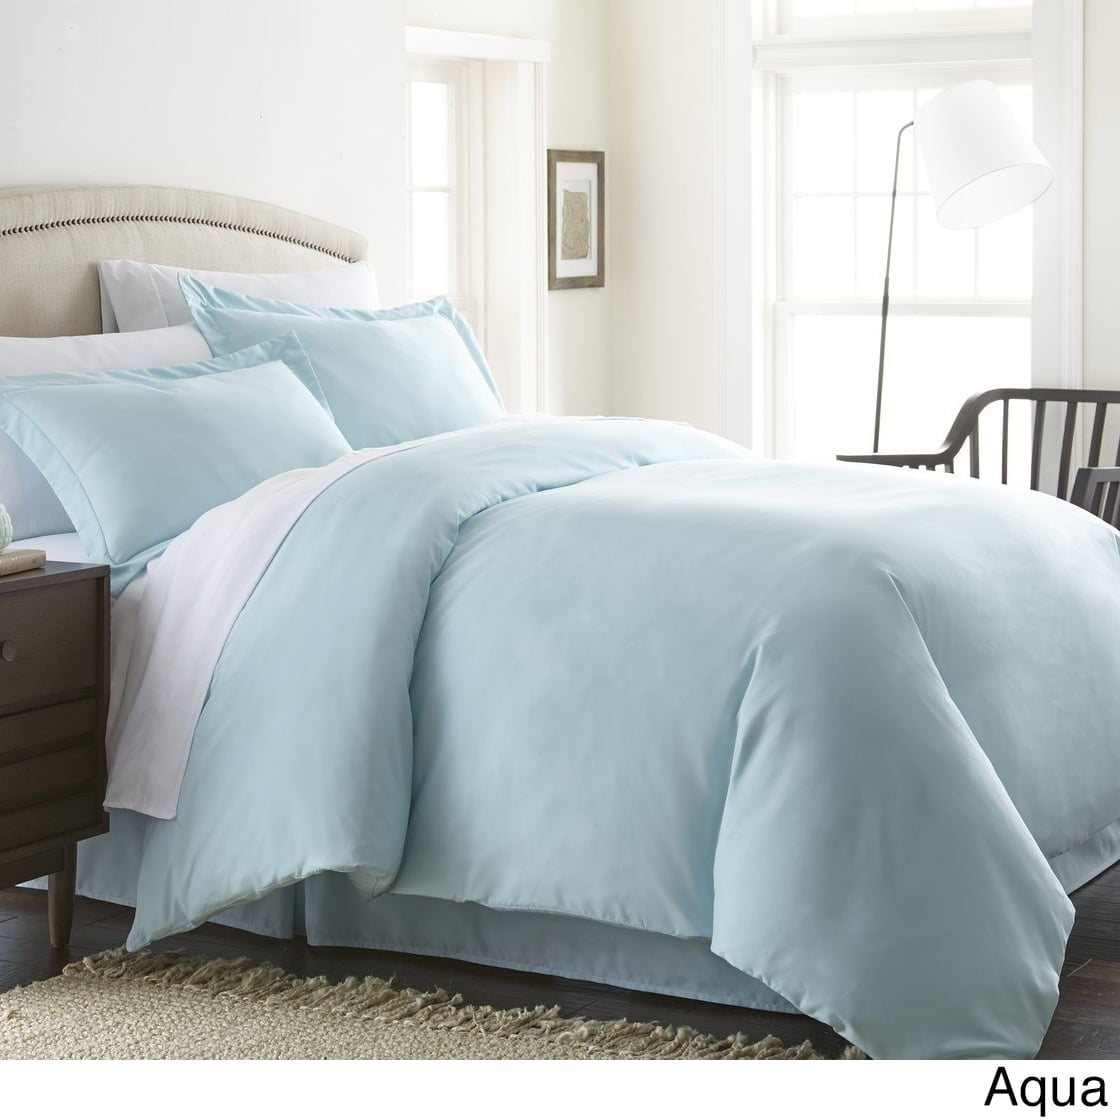 Shop soft essentials ultra soft 3 piece duvet cover set on sale free shipping on orders over 45 overstock com 10910263